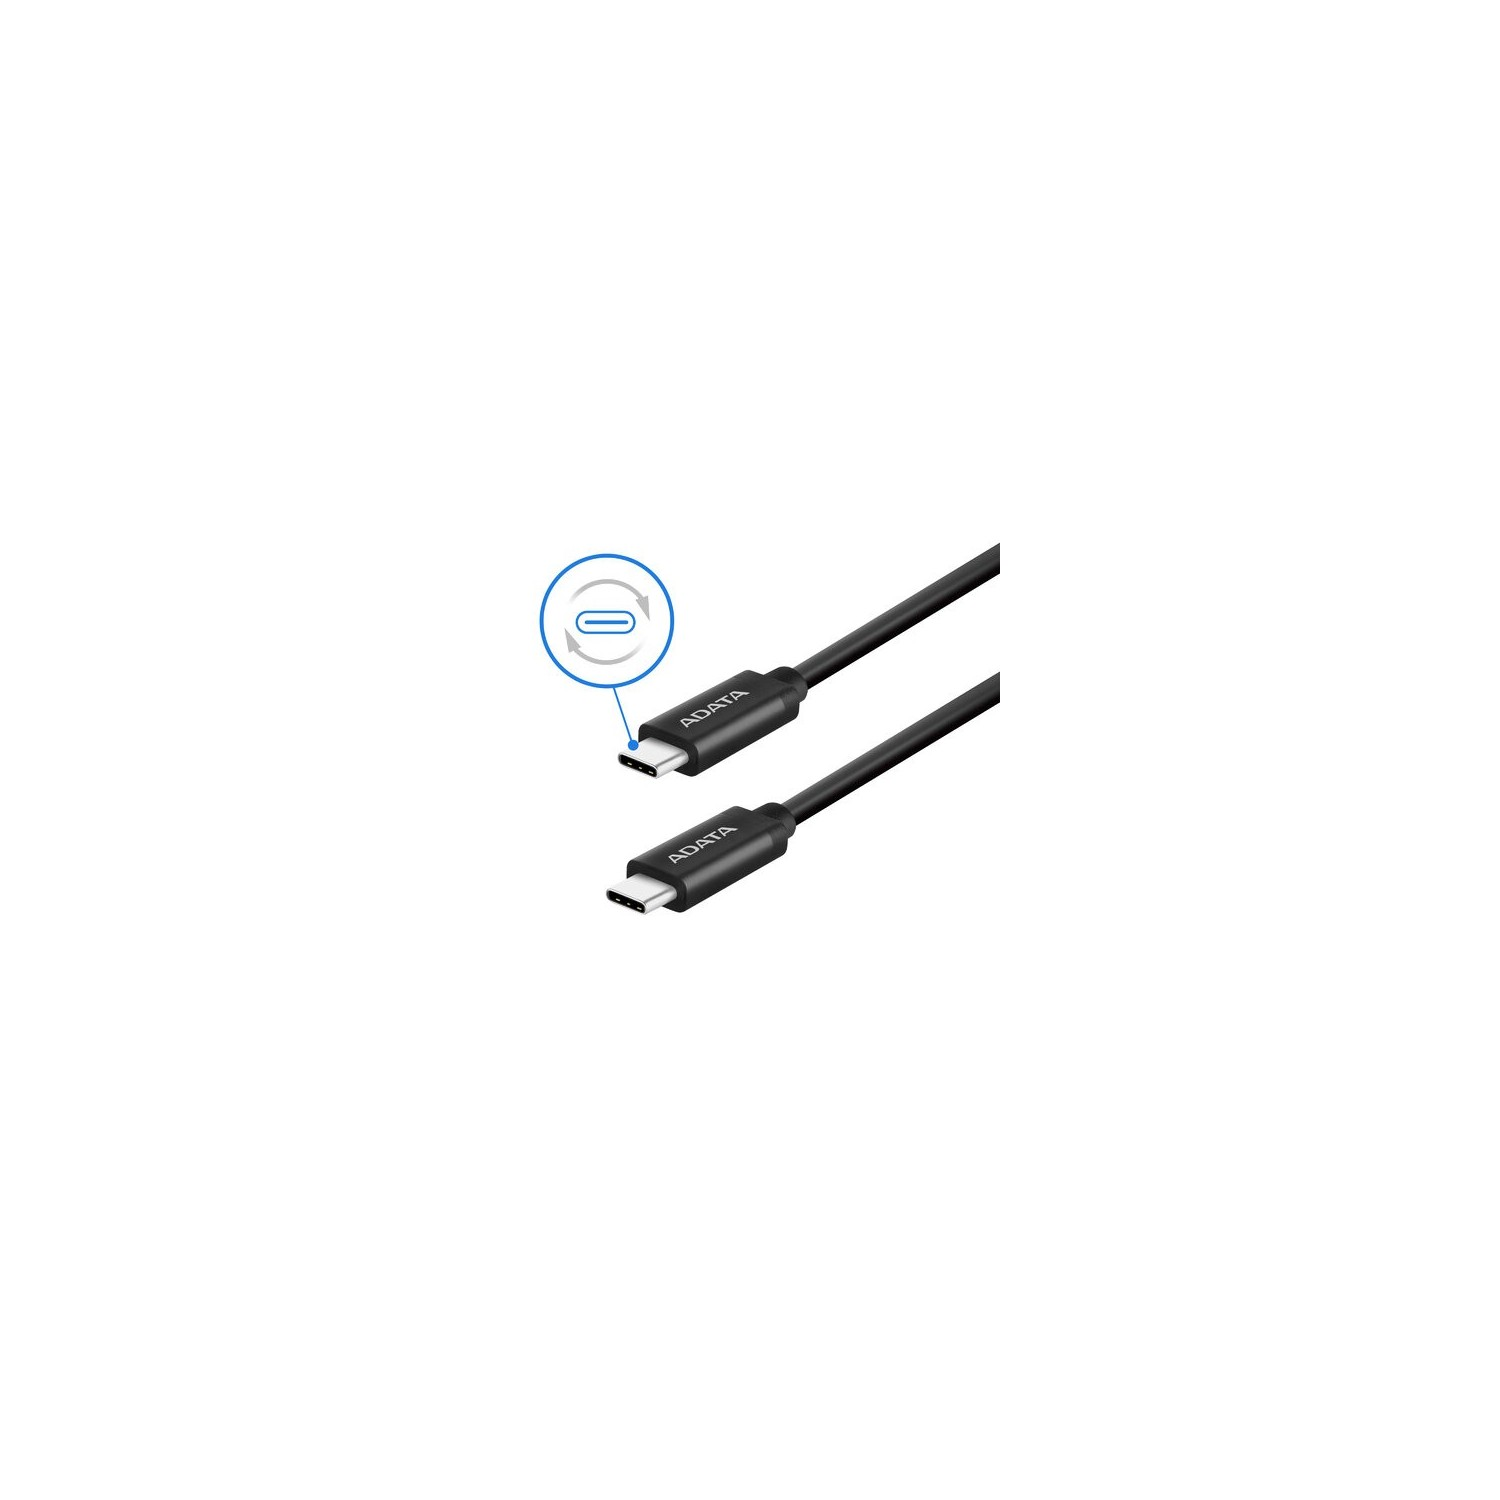 Cable - ADATA USB-C to USB-C data cable 1m Black